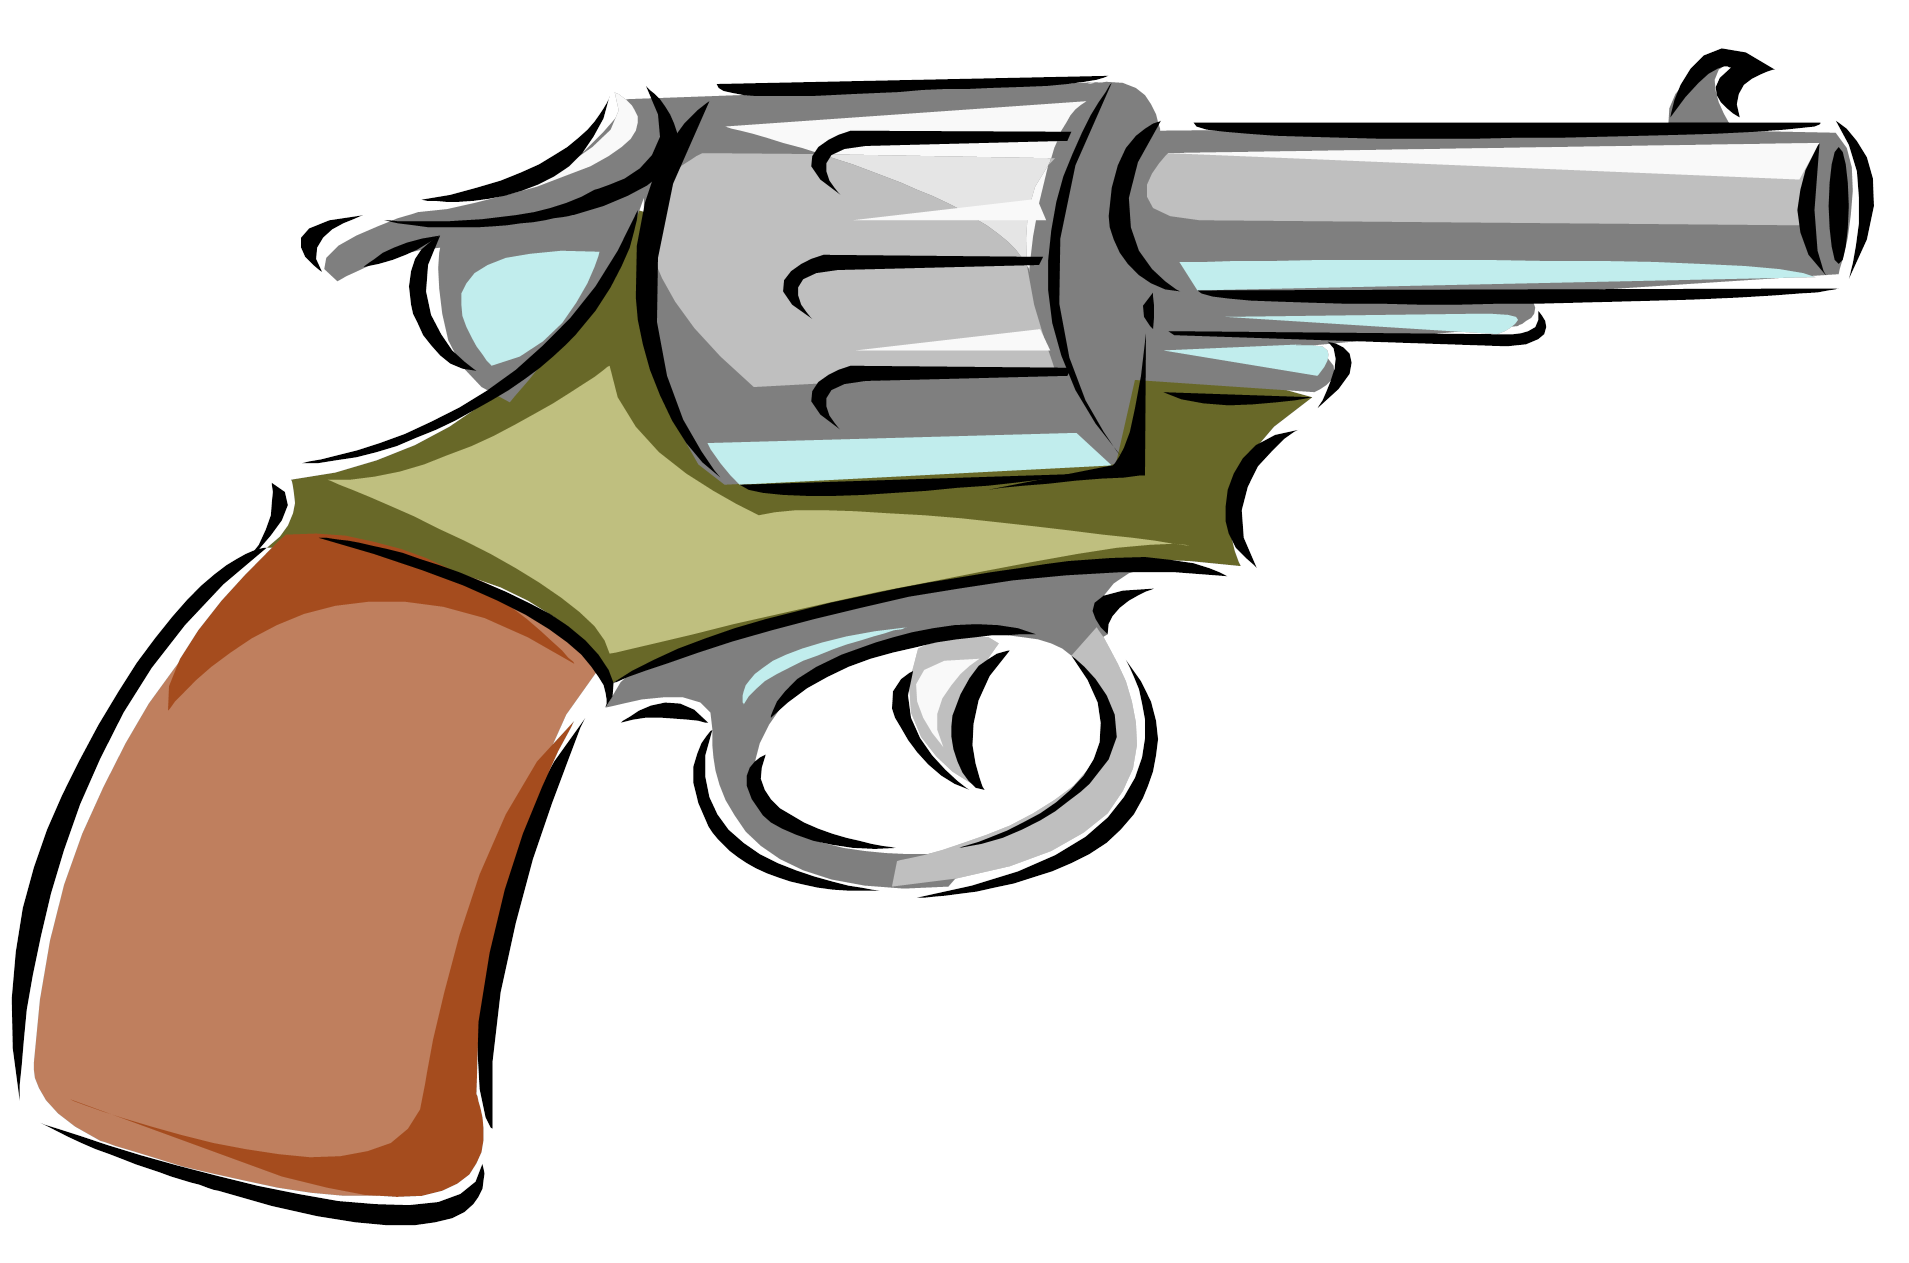 Drawing pistol comic. Png transparent gun